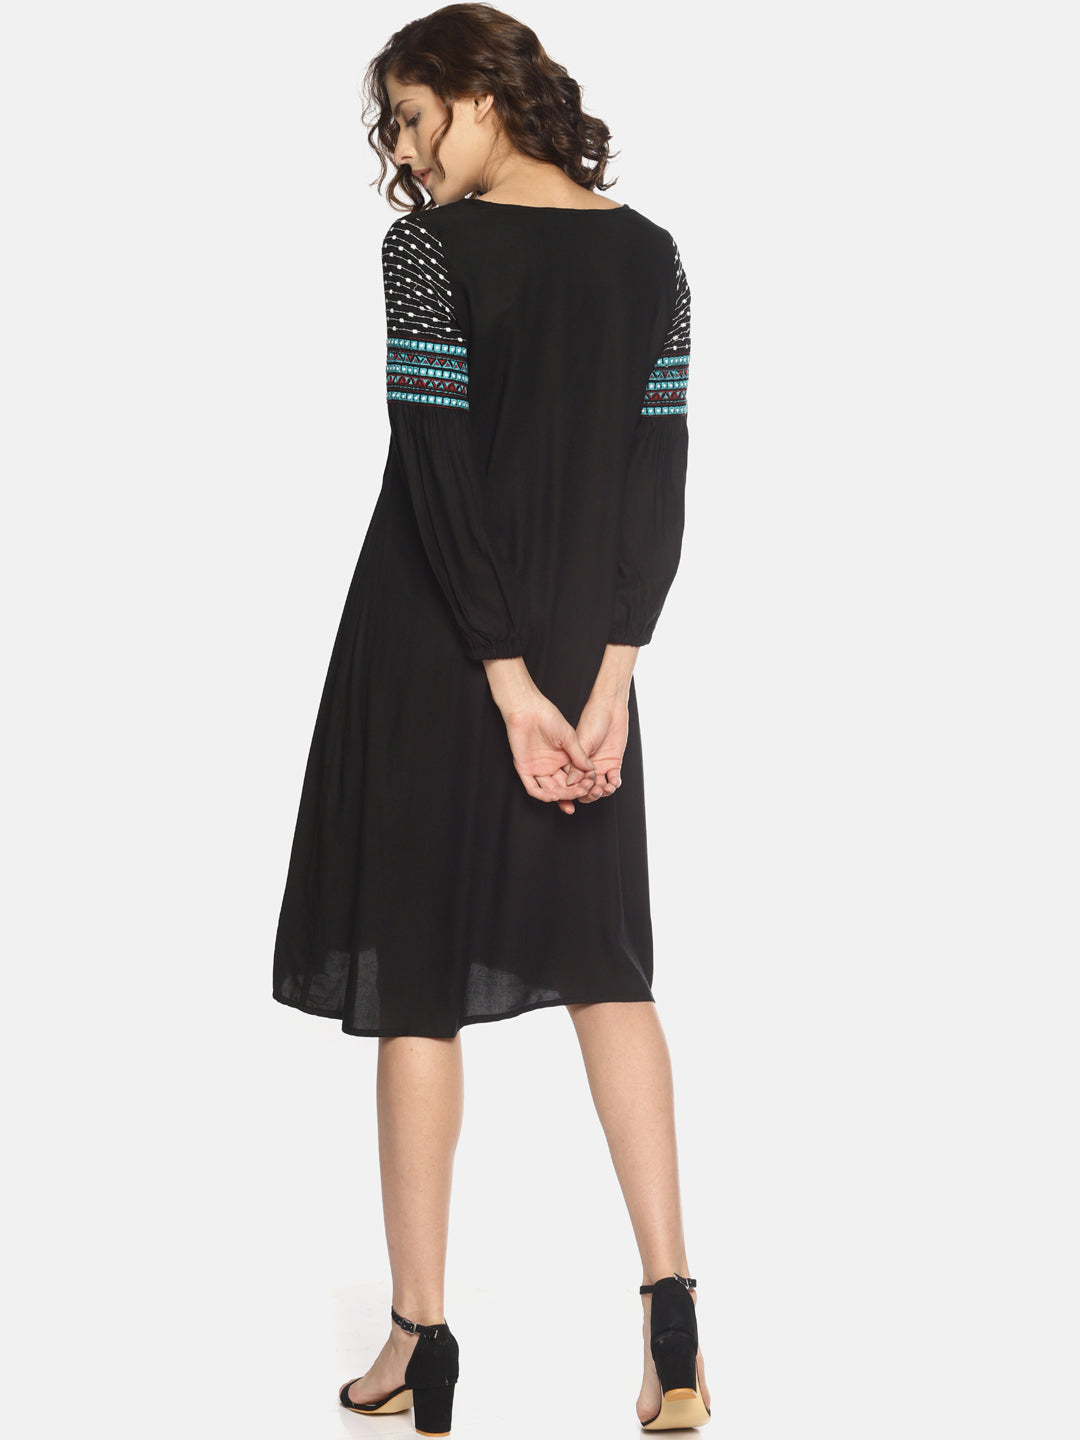 Black Dress With Embroidered Sleeves | Untung